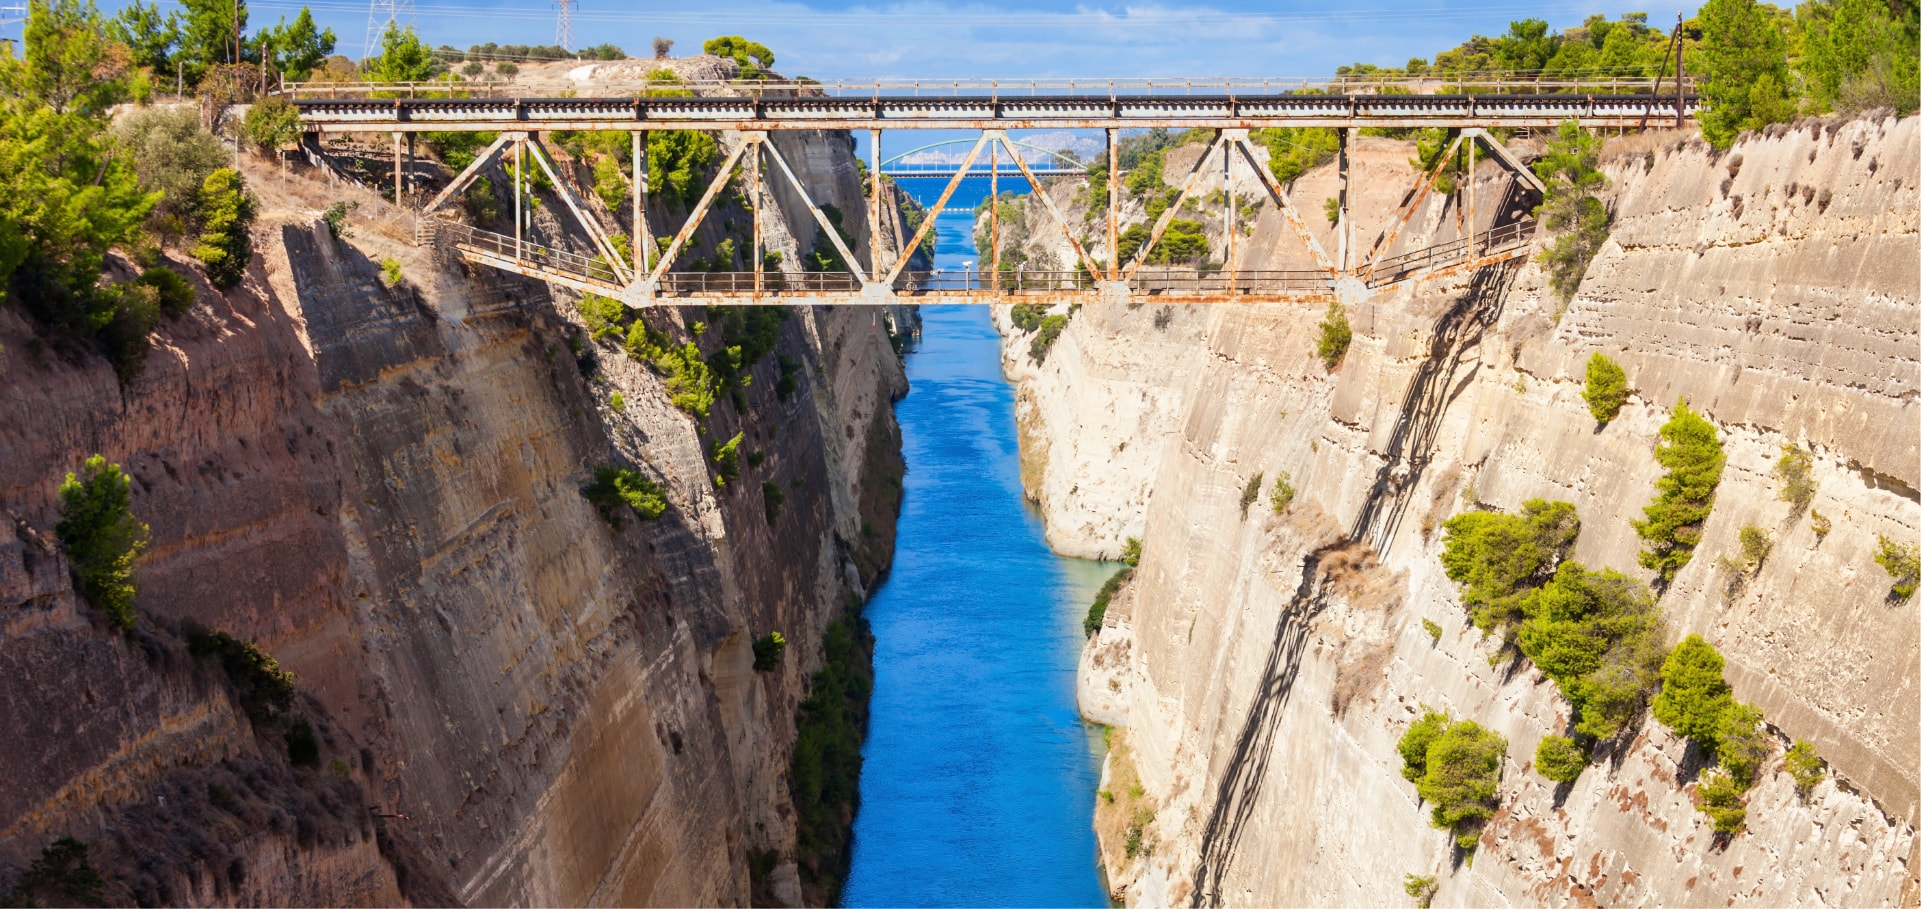 Specia Tour in Corinth Canal | Opatours